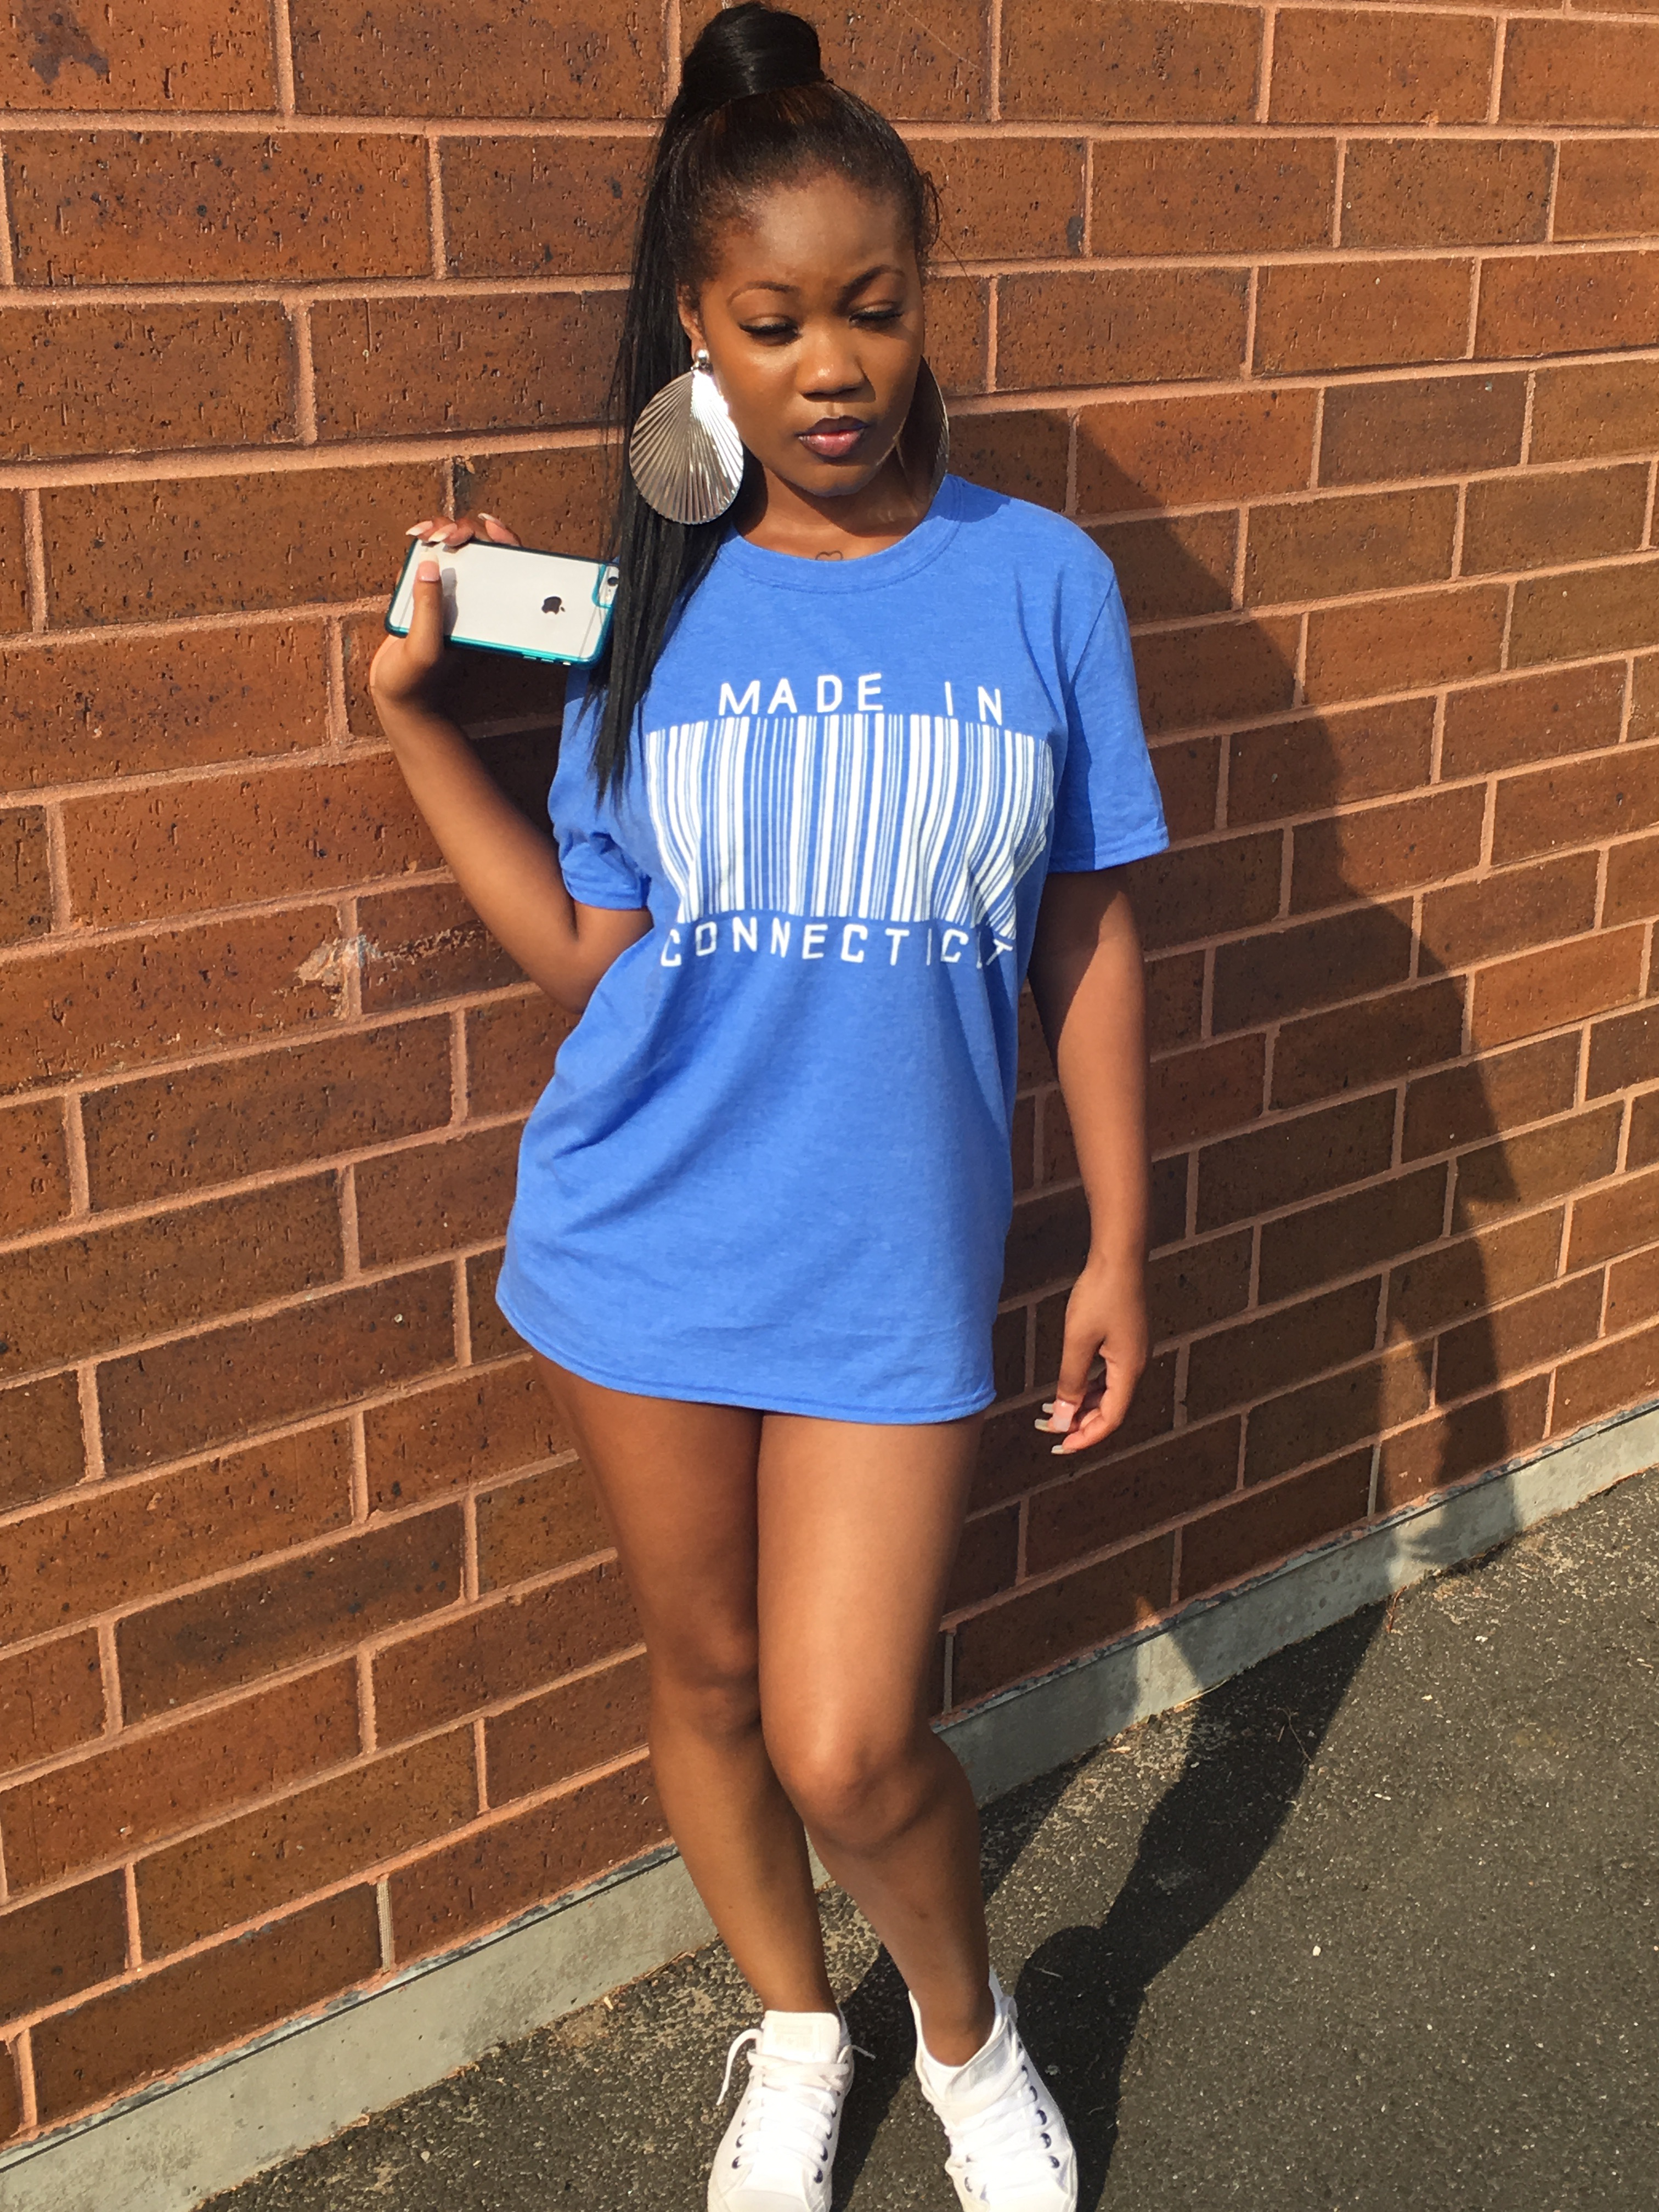 Made In brand Blue t-shirt